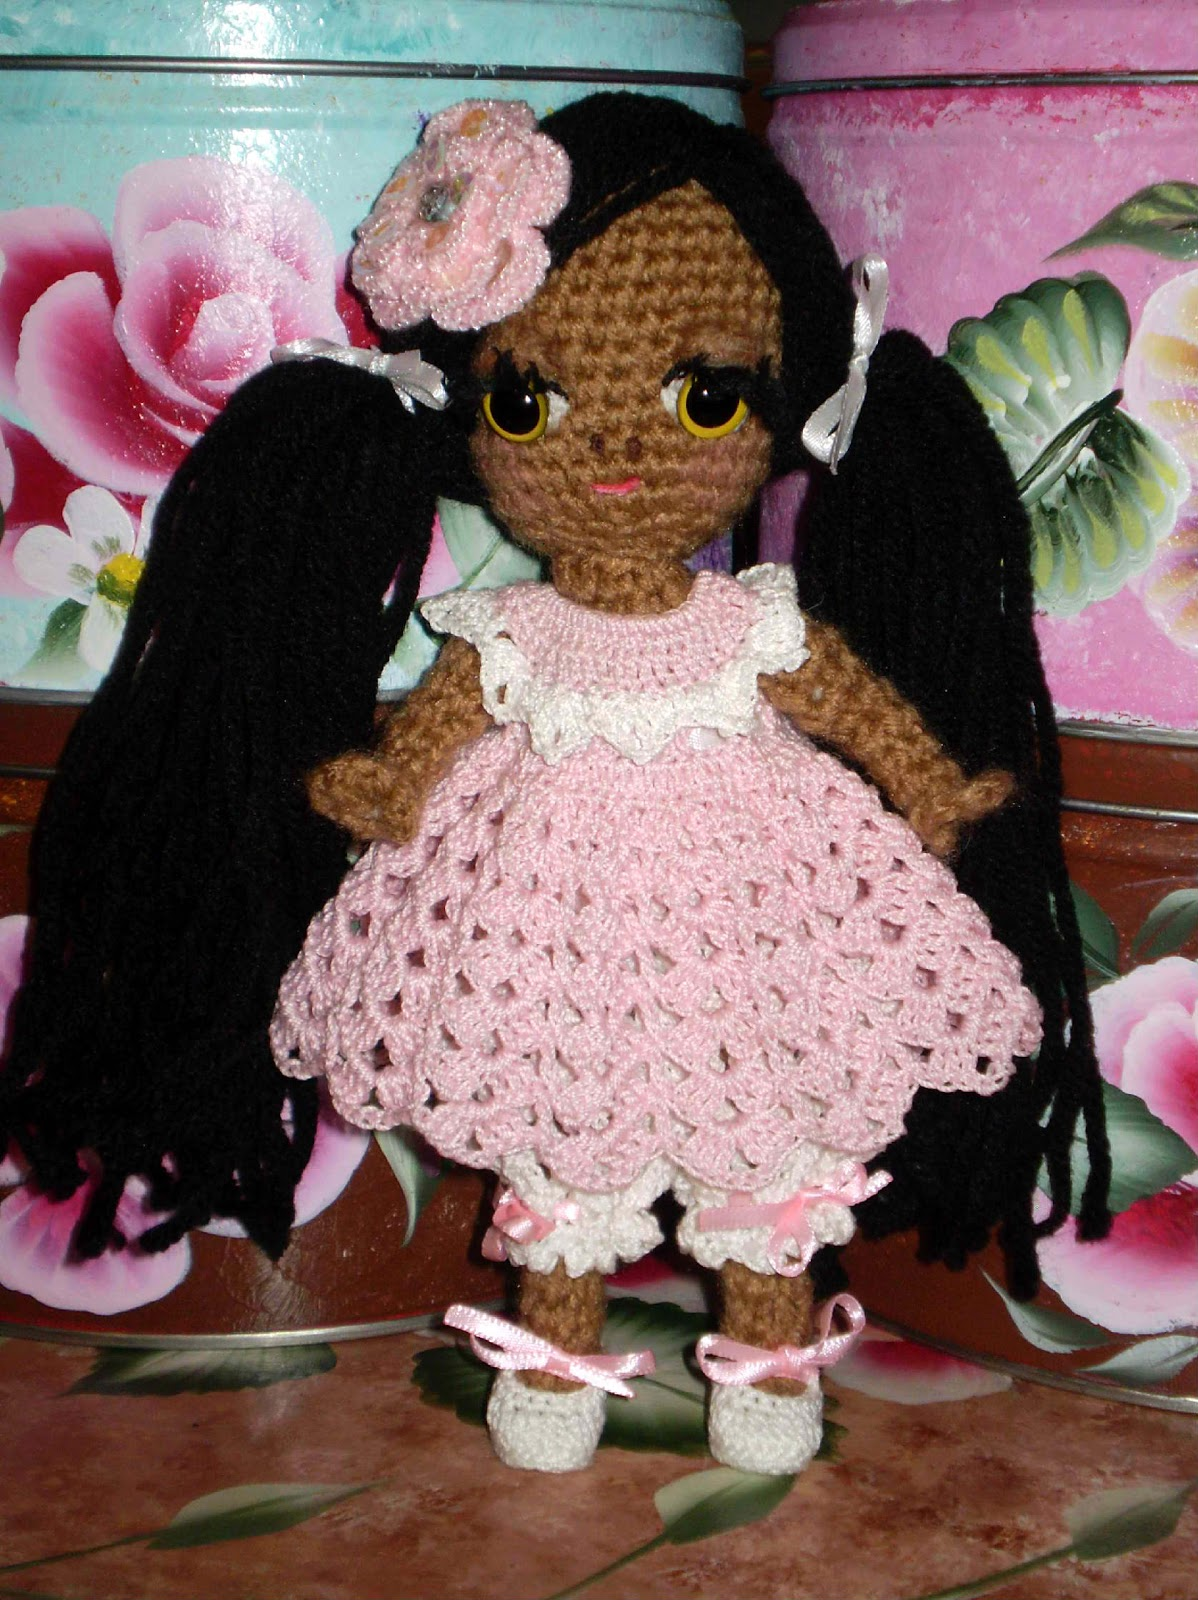 Crochet Mini Doll Pattern : Crochet Doll Miniature Pattern Free Patterns For Crochet